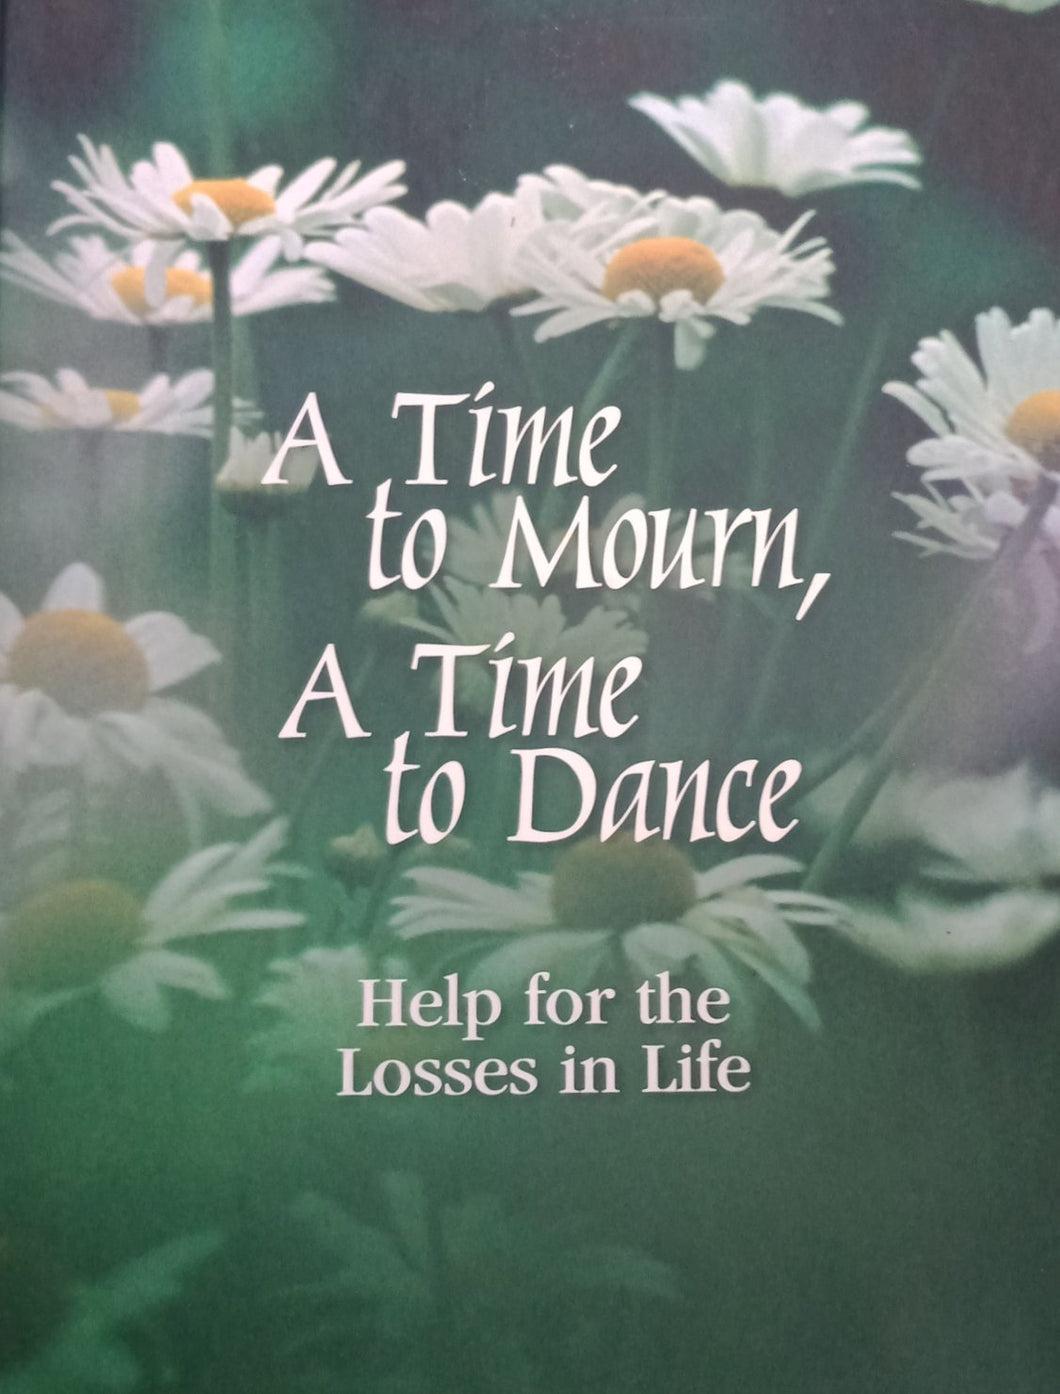 A time to mourn a time to dance